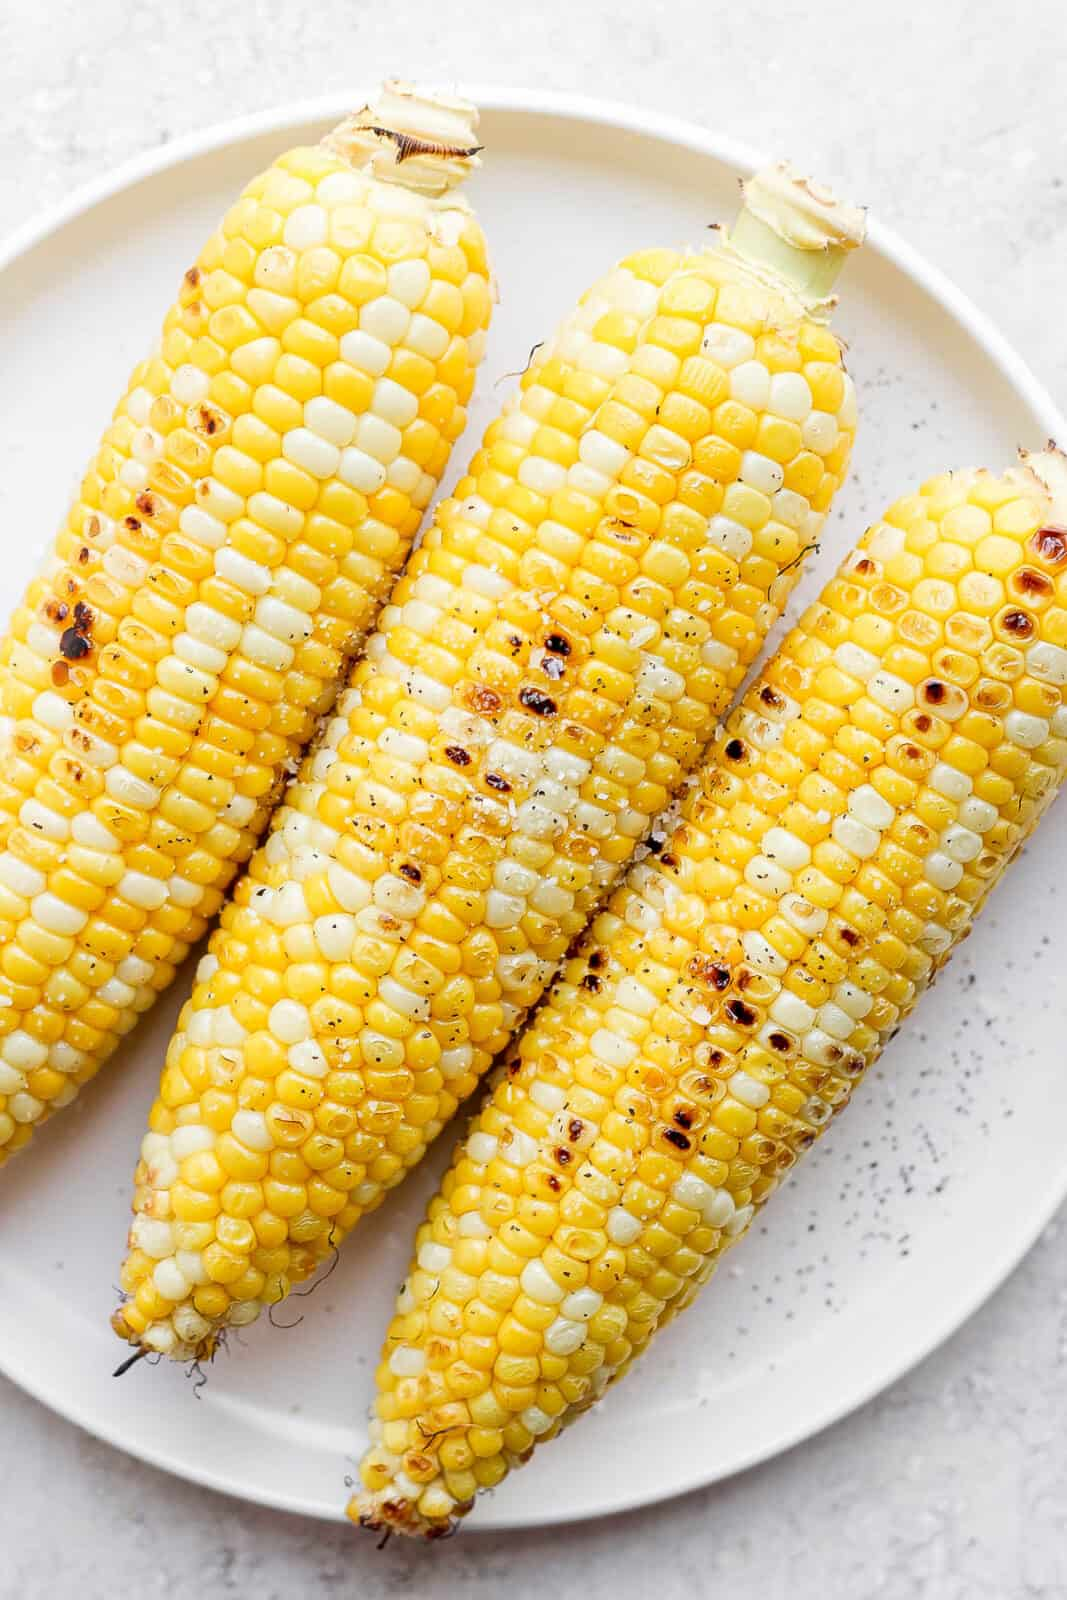 Three pieces of grilled sweet corn on a plate.